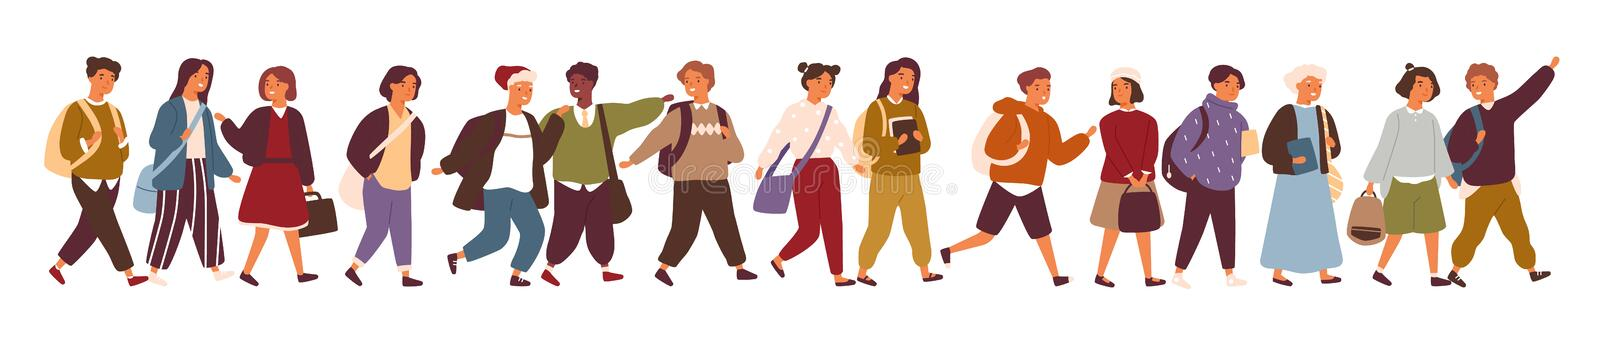 Collection of children, pupils or students going to elementary or middle school. Bundle of kids walking down street stock illustration